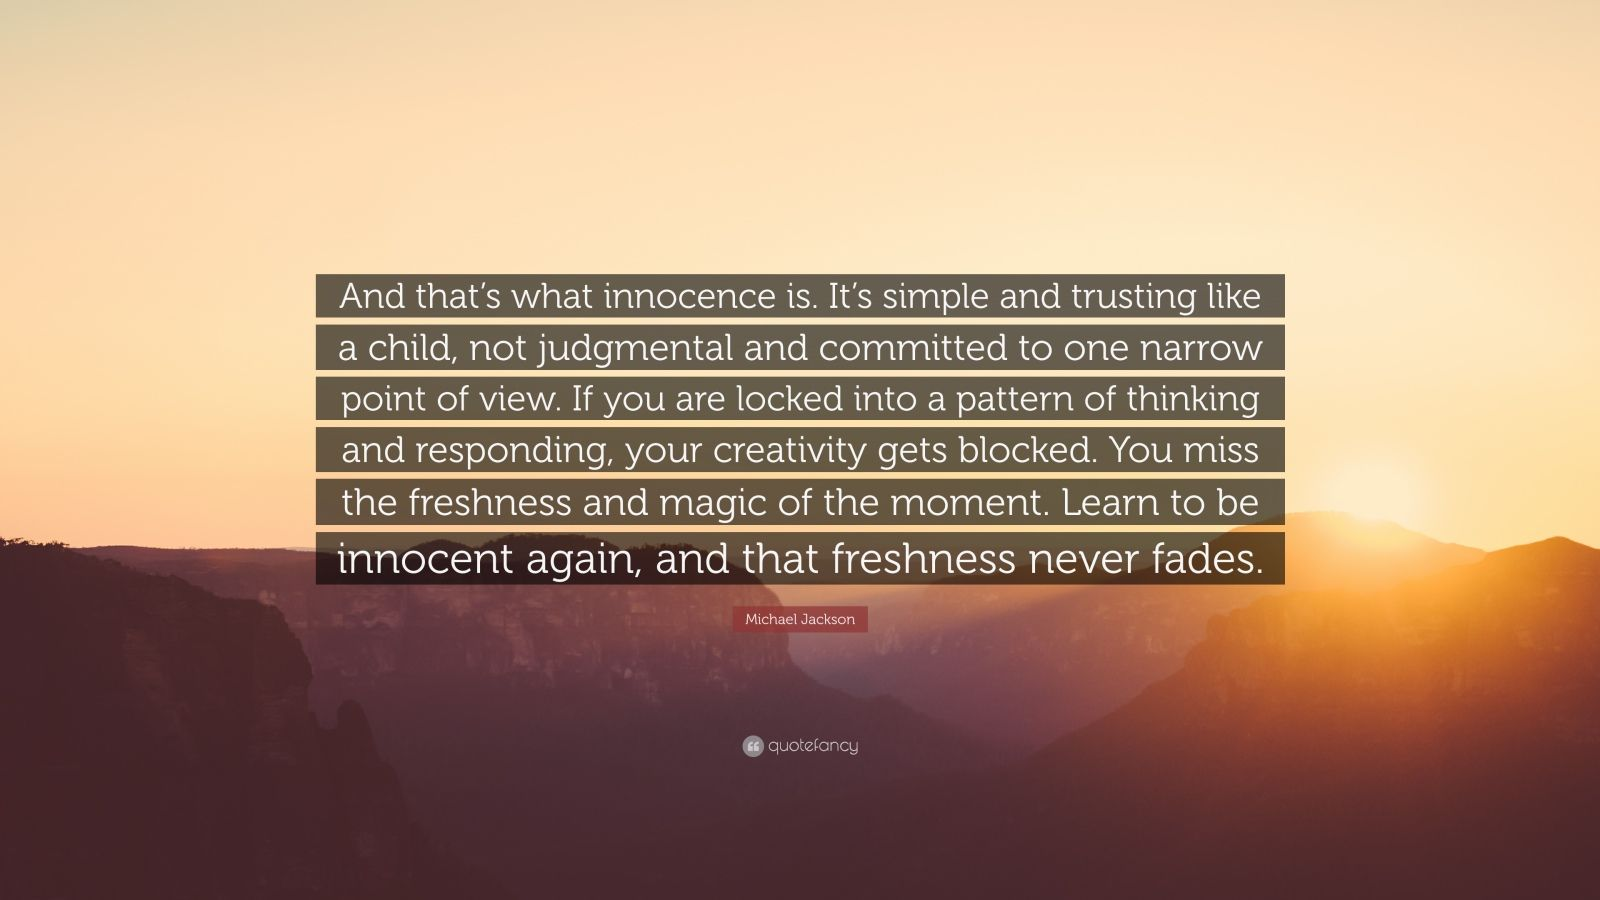 "Michael Jackson Quote: ""And that's what innocence is. It's simple and trusting like a child, not judgmental and committed to one narrow point of view. If you are locked into a pattern of thinking and responding, your creativity gets blocked. You miss the freshness and magic of the moment. Learn to be innocent again, and that freshness never fades."""